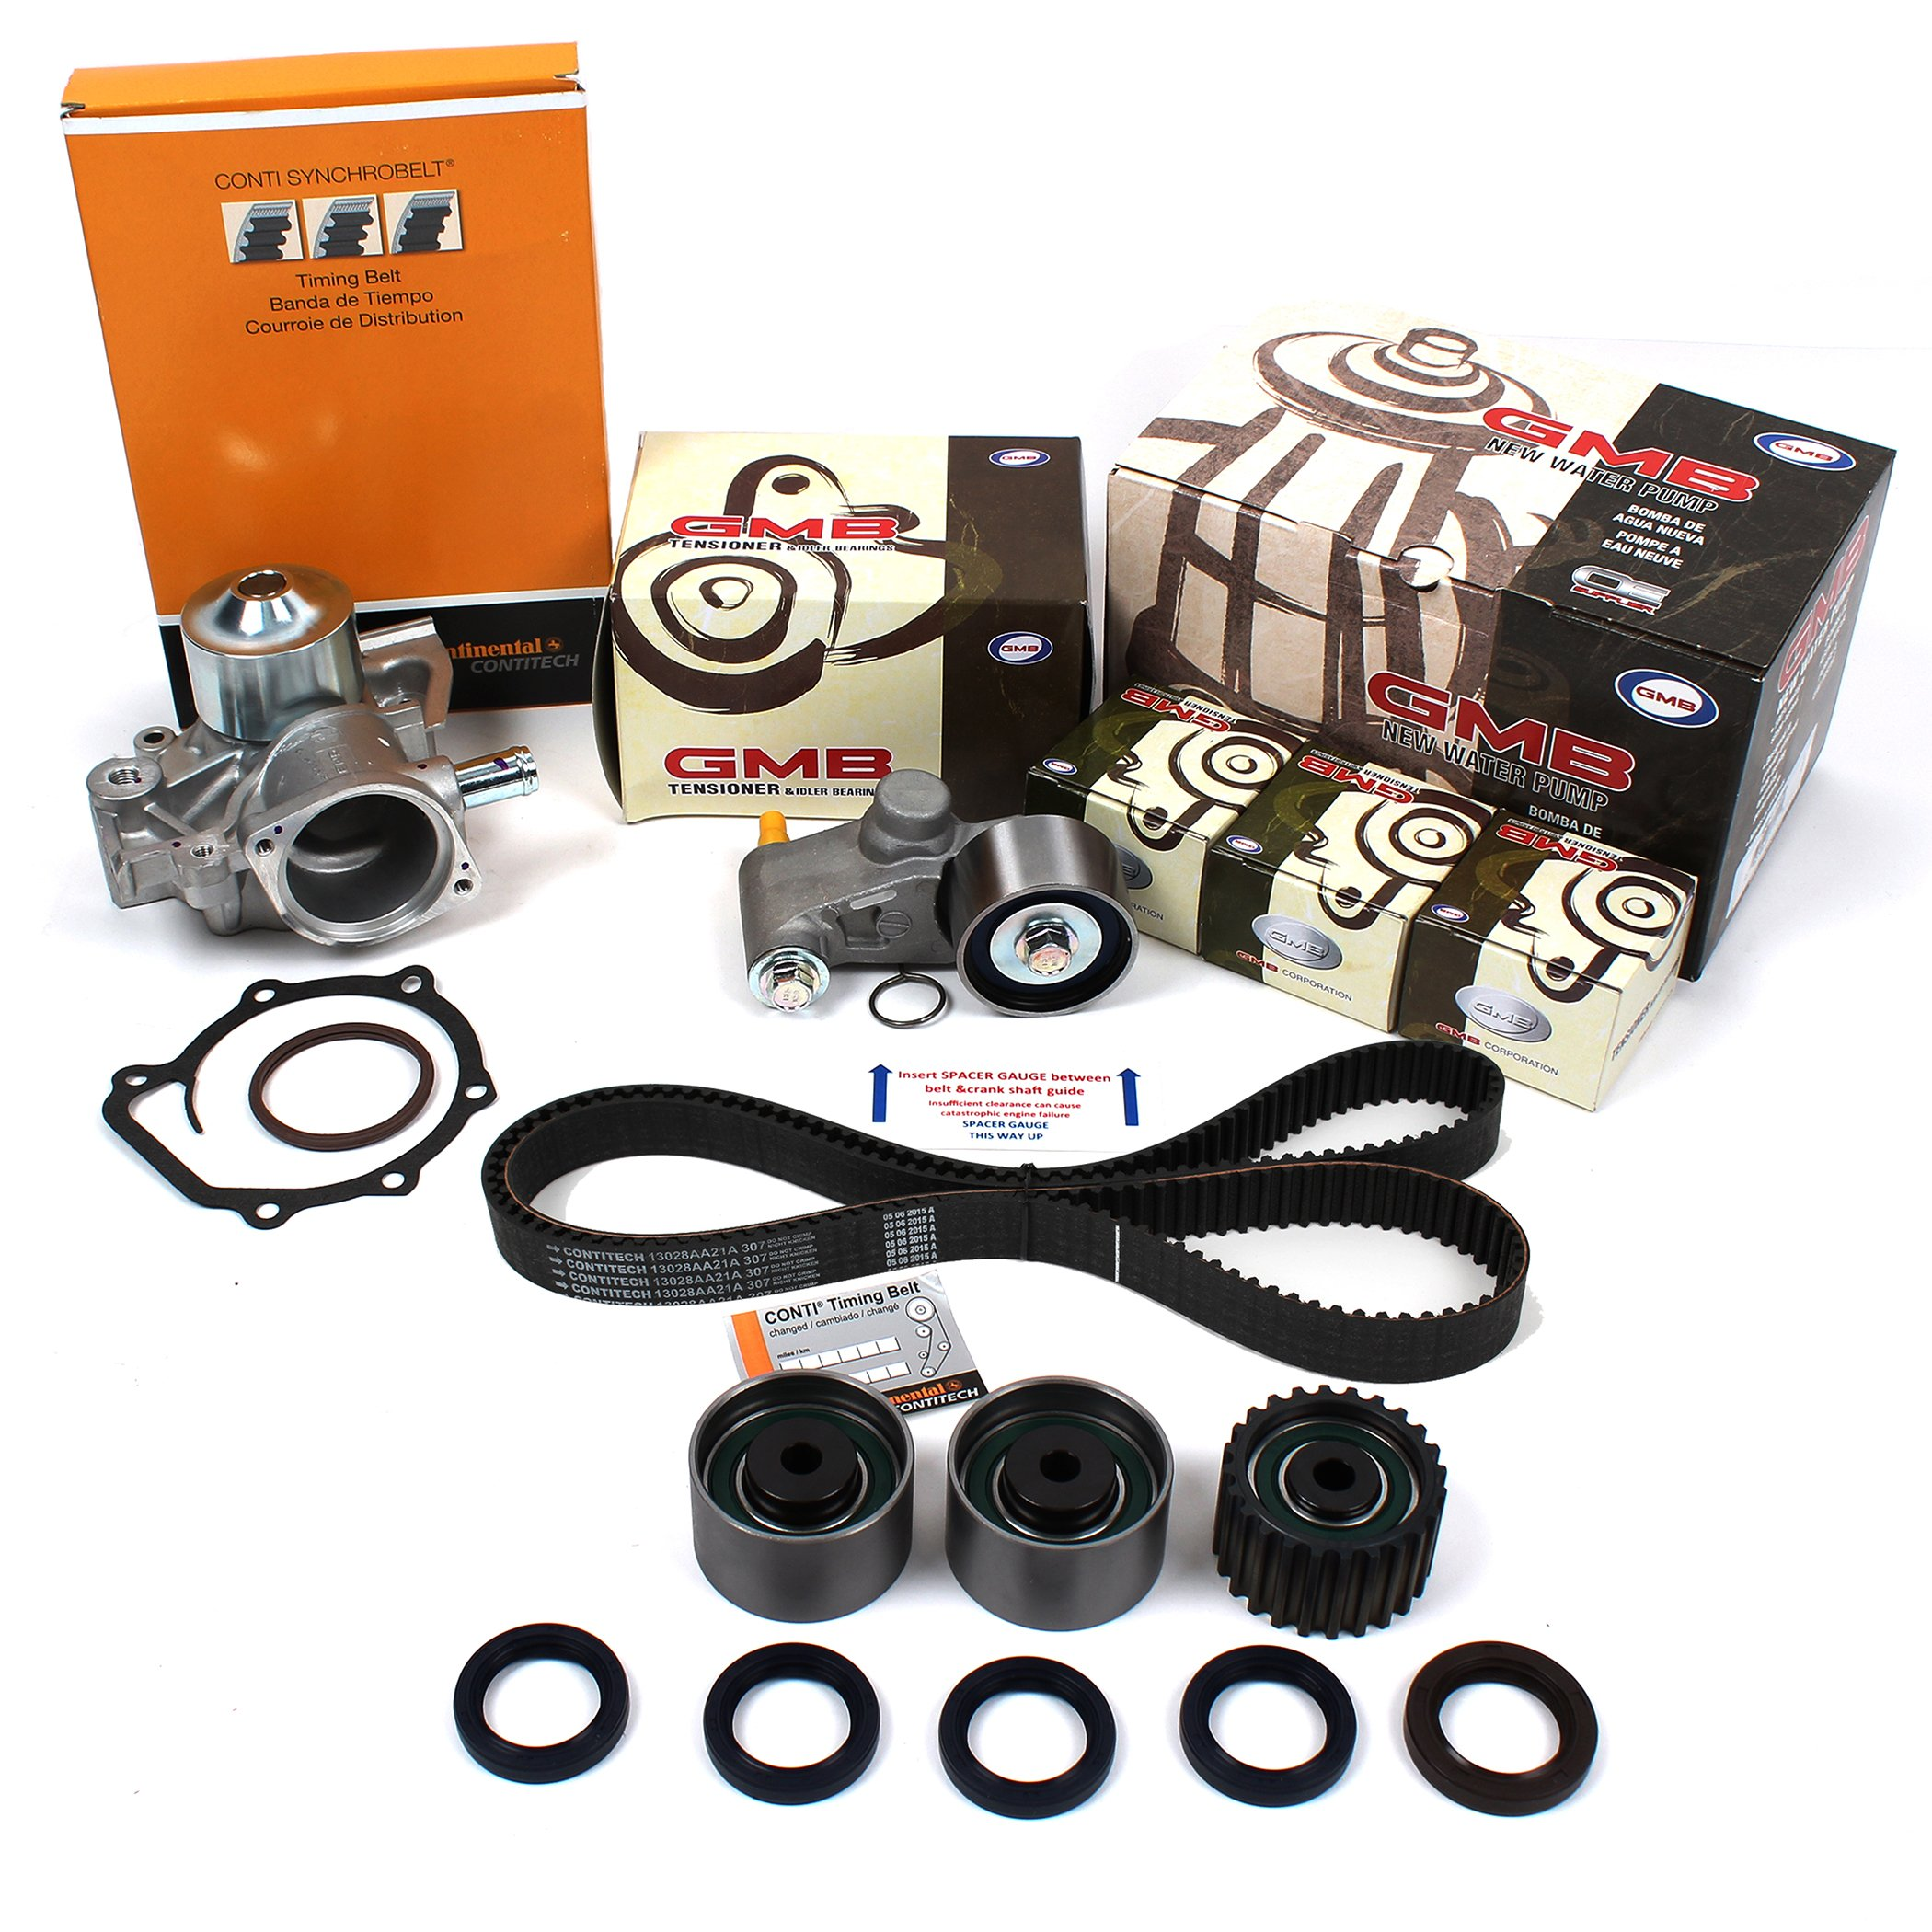 "NEW TCKS307WP Timing Belt Kit, Water Pump Set, & Oil Seals for 00-06 Subaru 2.5L ""SOHC"" Non-Turbo EJ25 Engine Legacy, Outback / Baja(03-06) (ContiTech + GMB)"